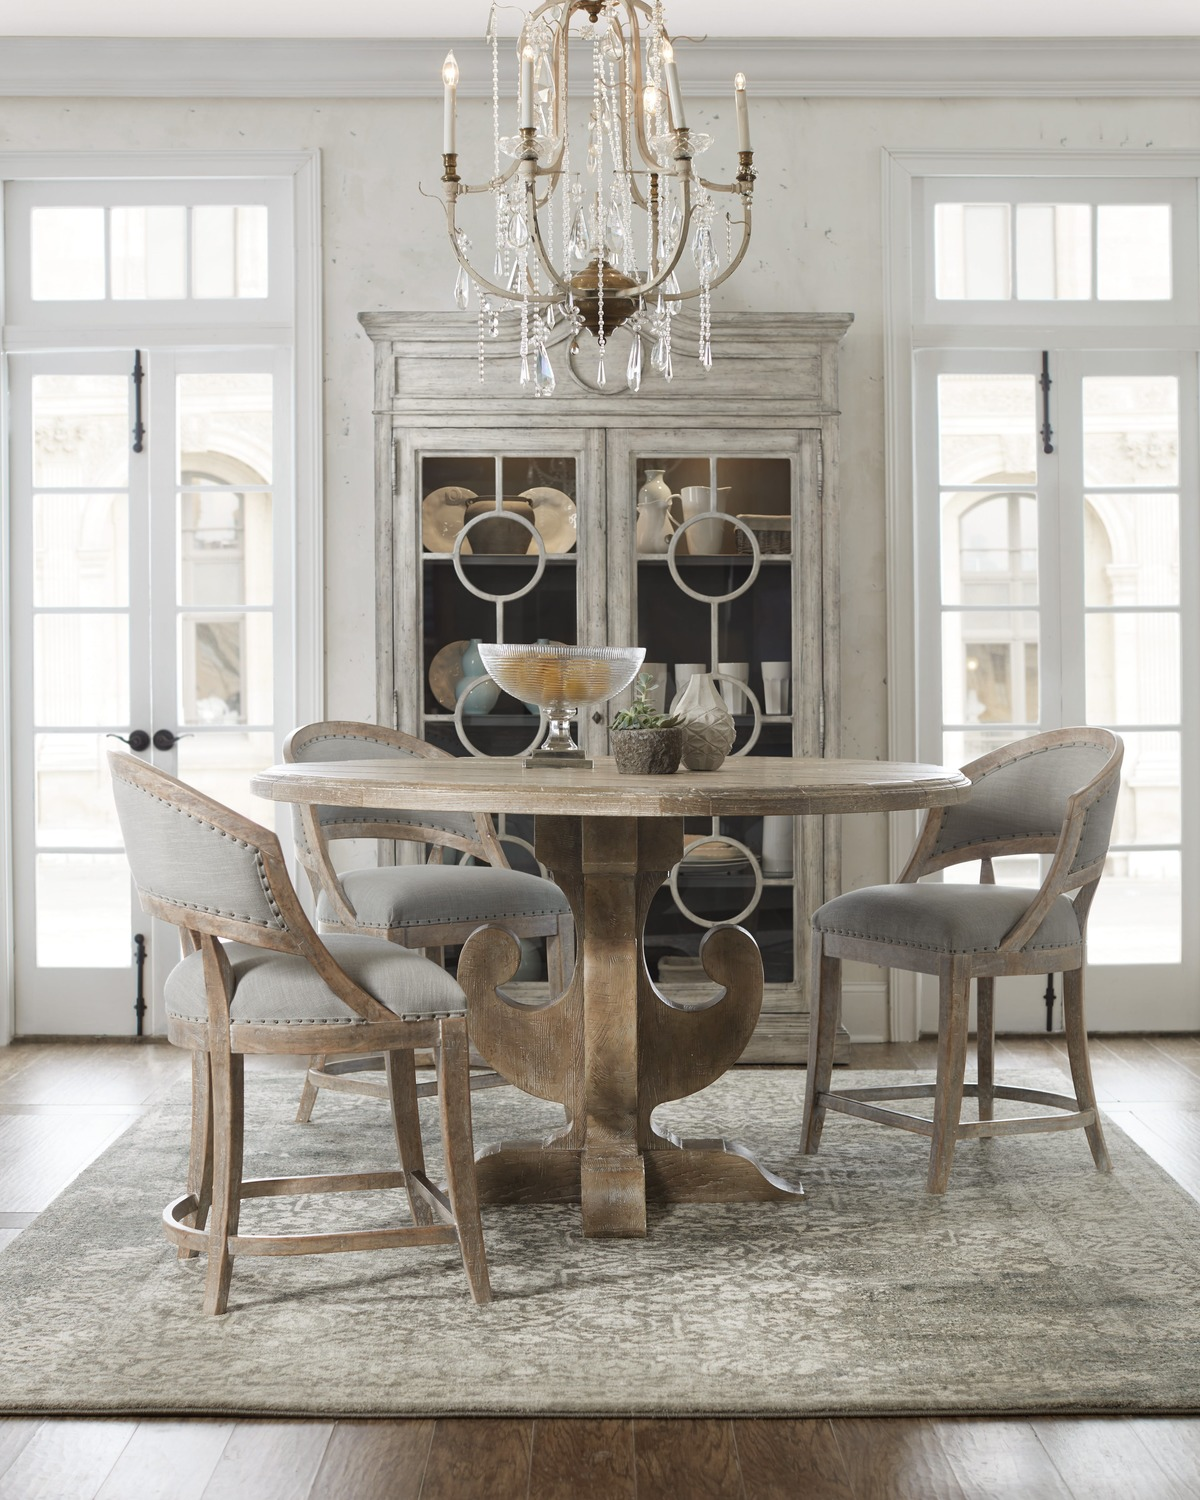 575025350mwd in by hooker furniture in loganville ga dining room rh grandfurniture411 com Barrel-Shaped Dining Chair Bamboo Chippendale Dining Chairs